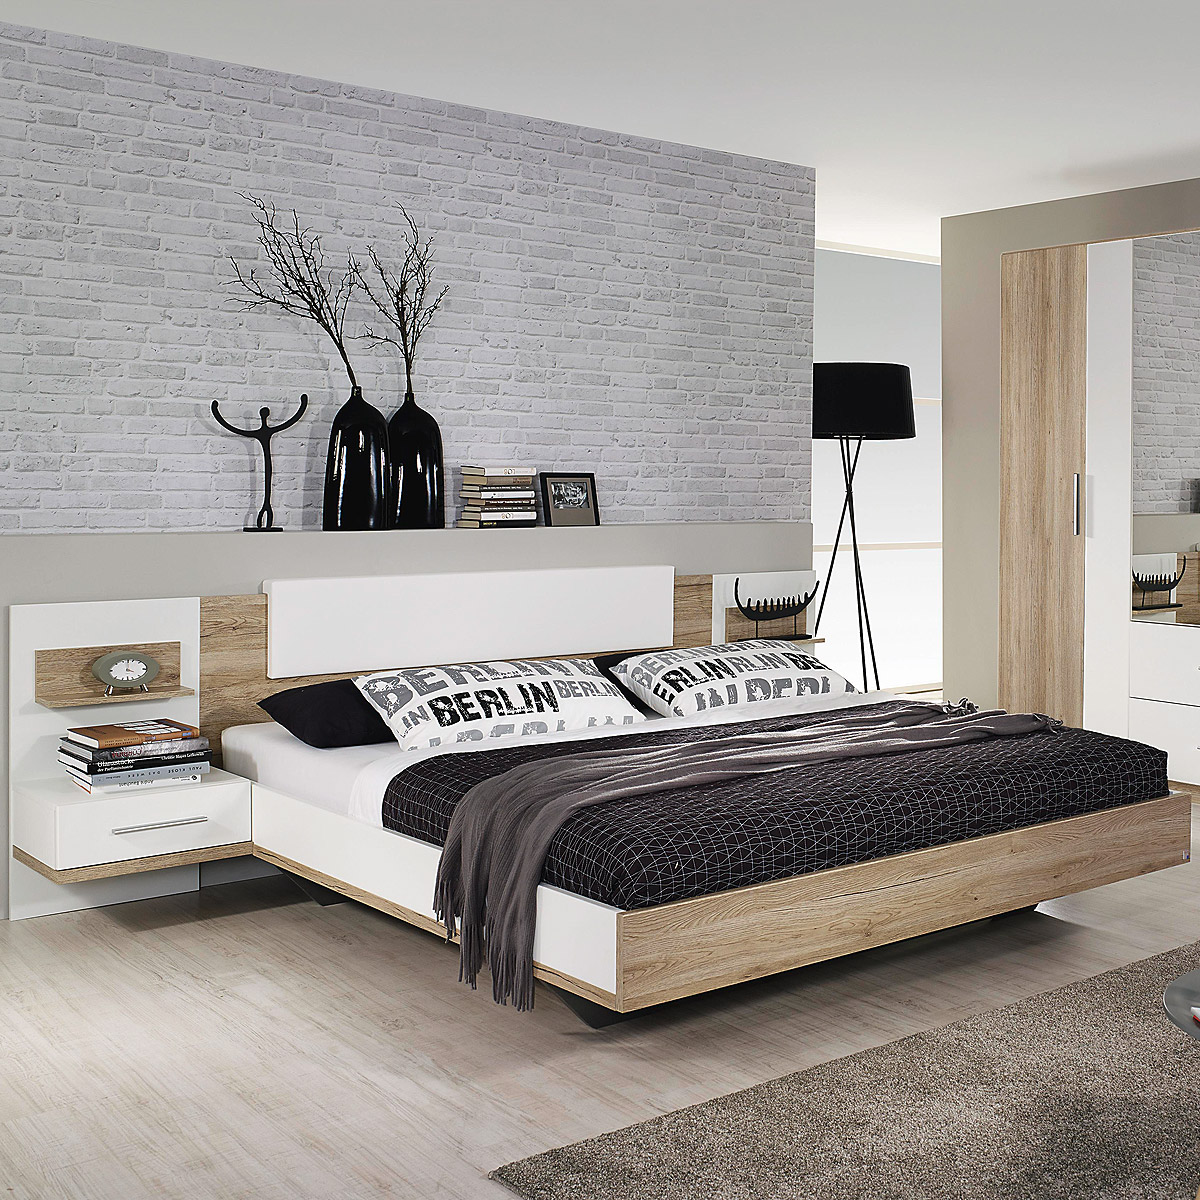 bettanlage bustas bett nako eiche sanremo hell und wei 180x200 cm ebay. Black Bedroom Furniture Sets. Home Design Ideas